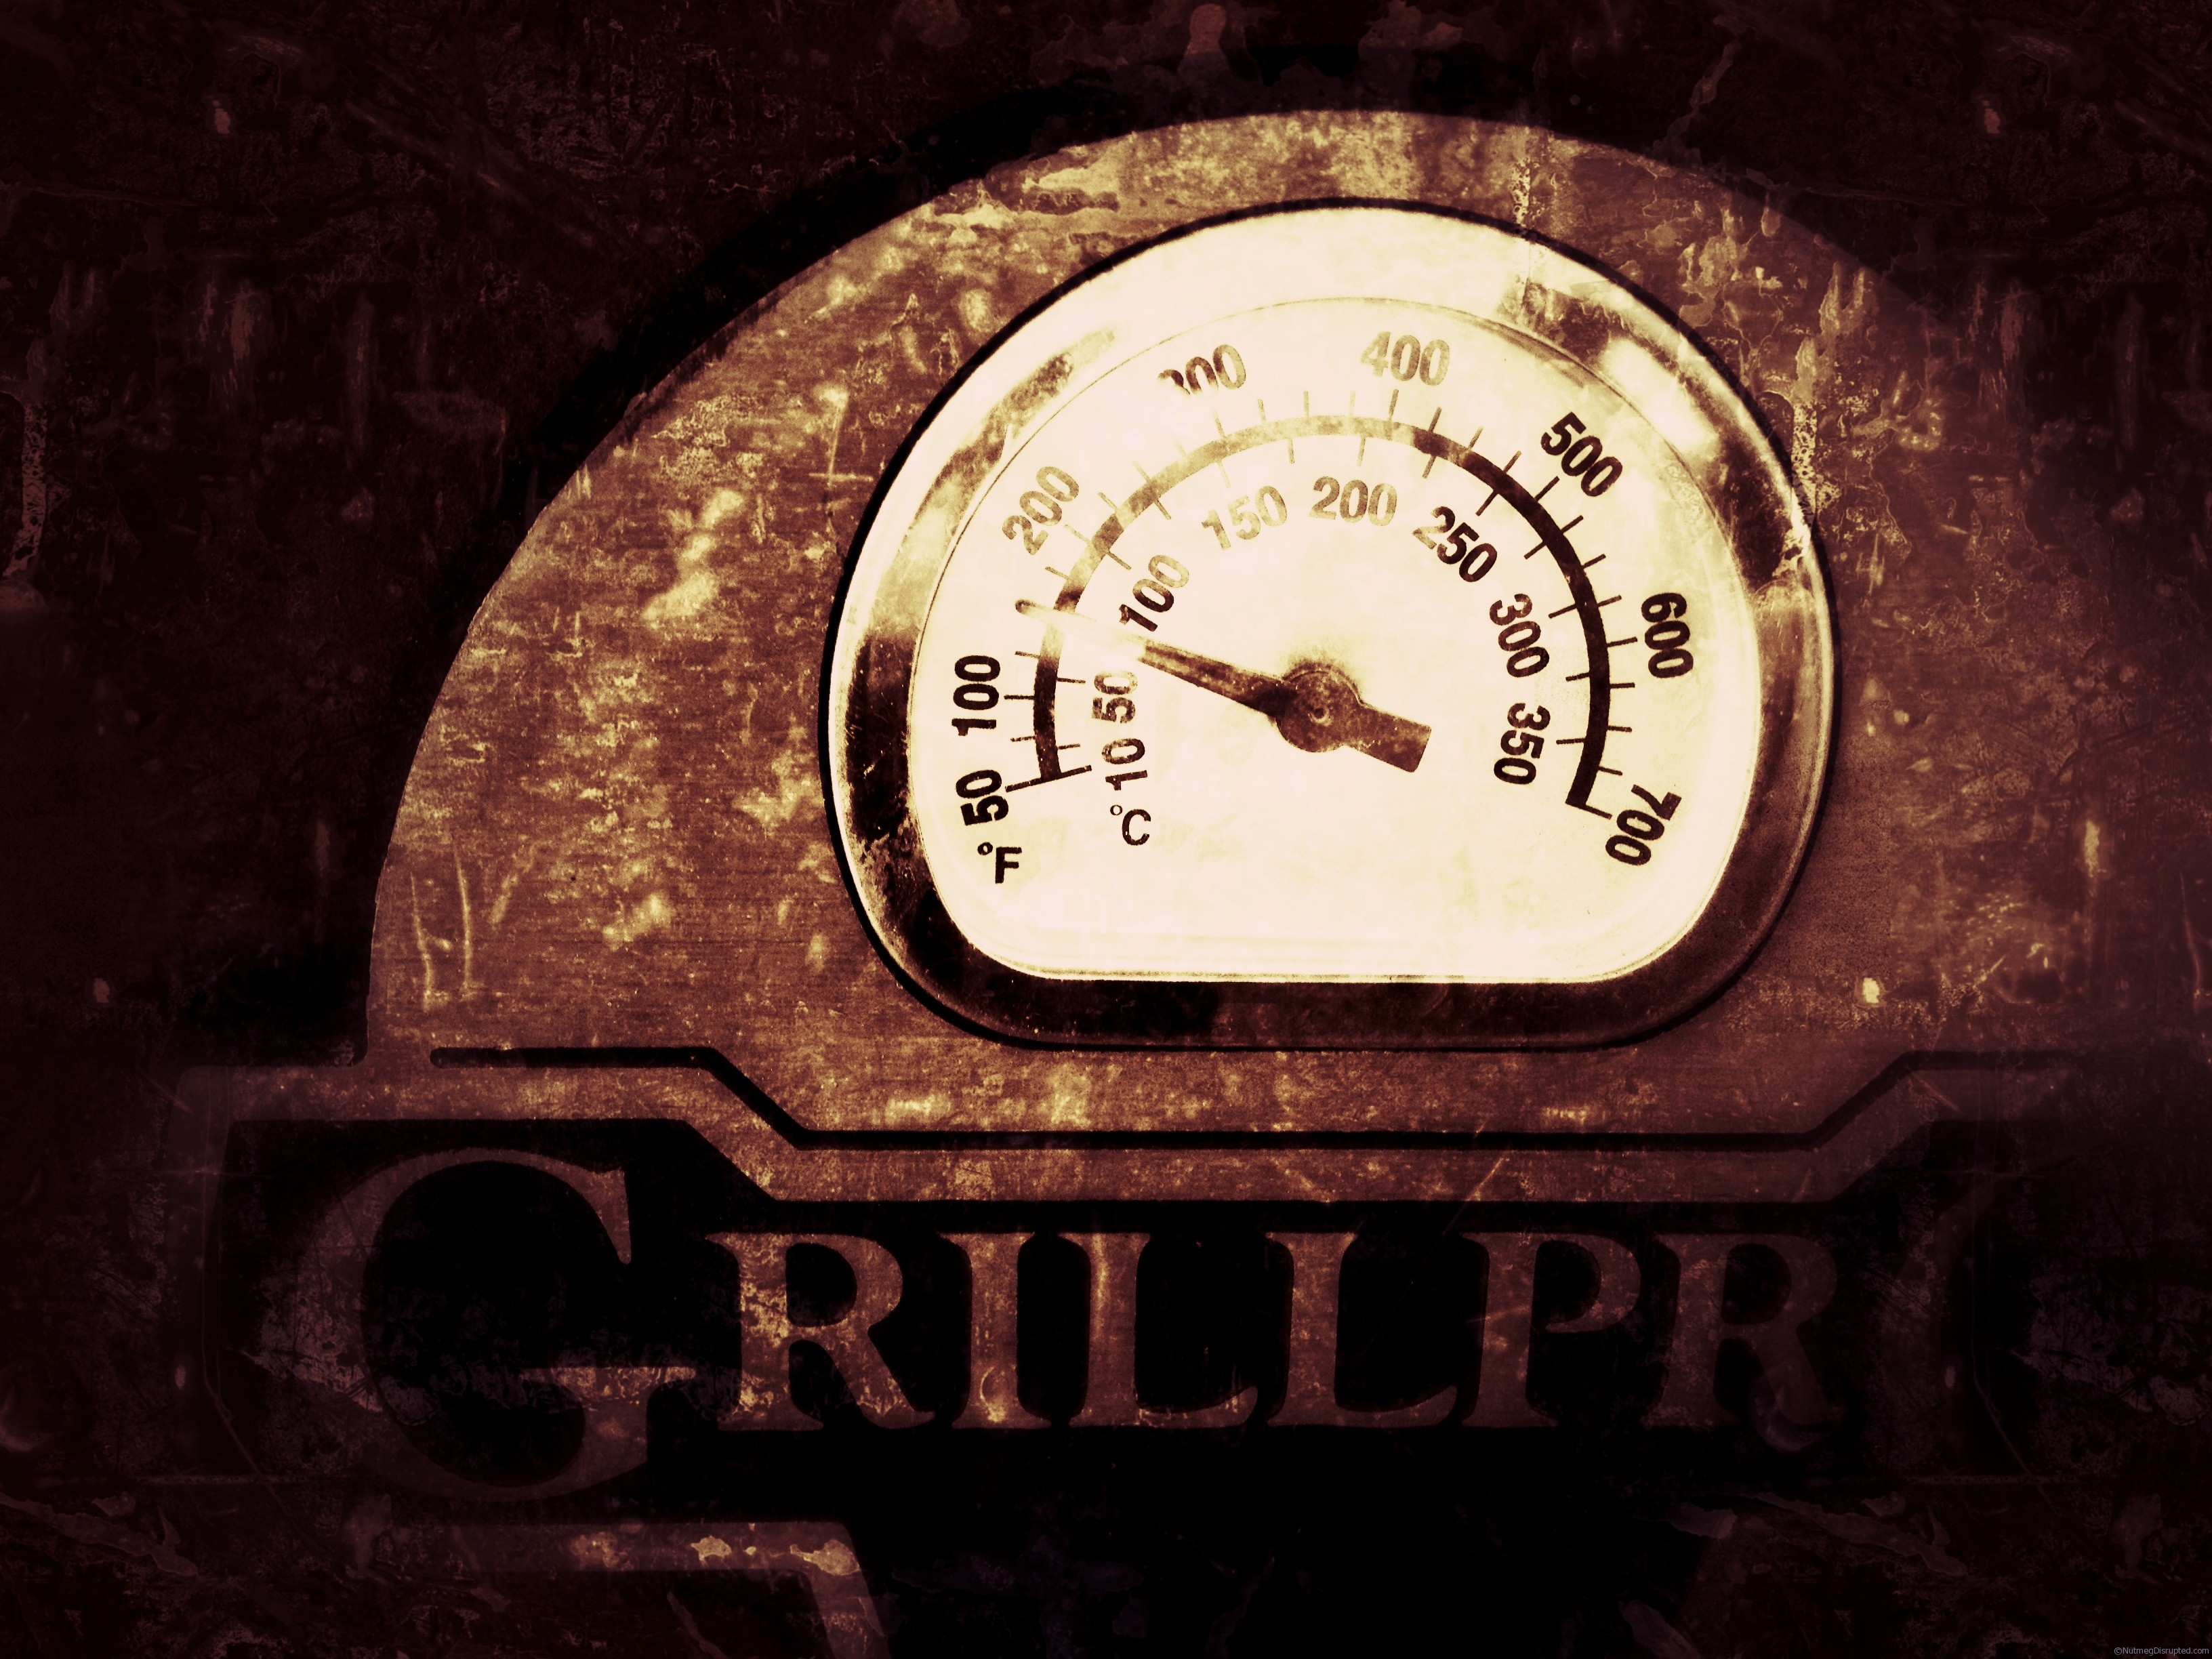 grill pro smoker in the Nutmeg Disrupted kitchen